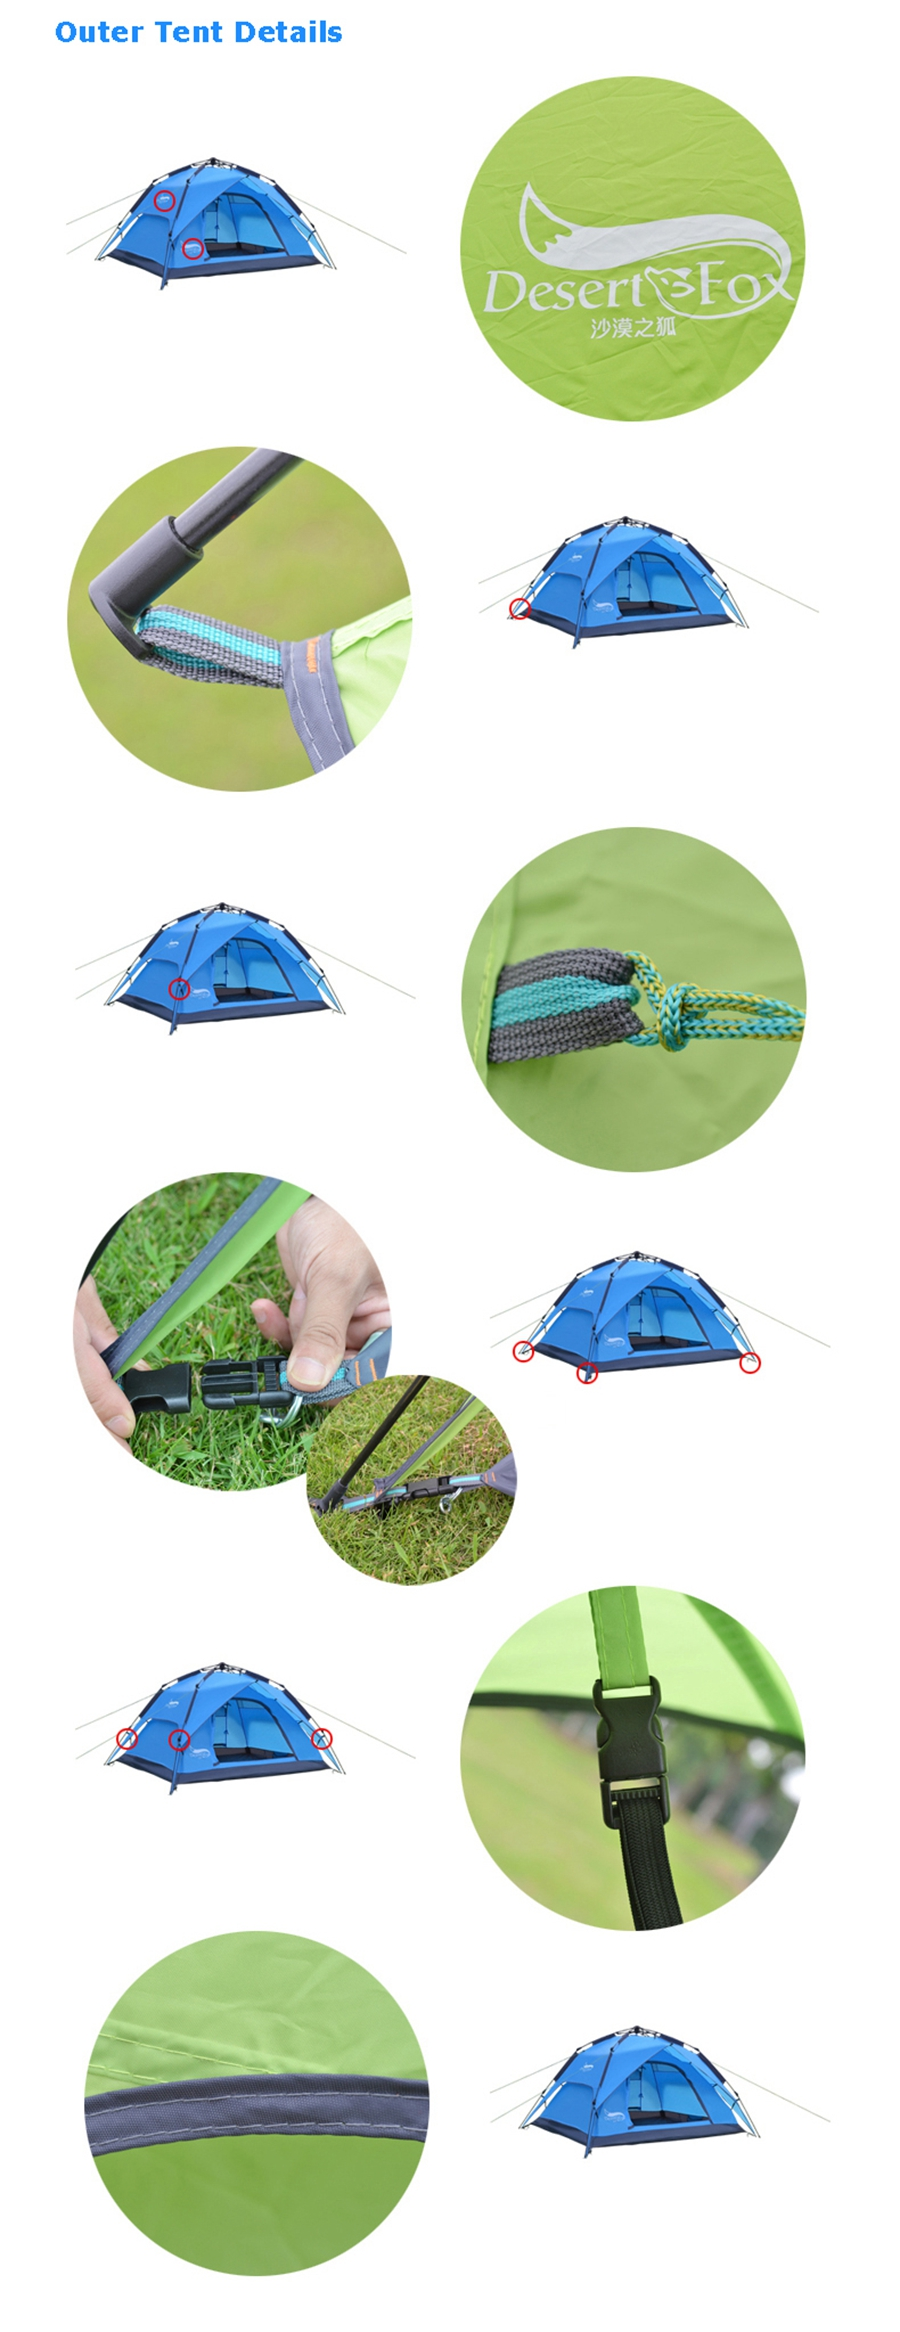 Desert&Fox Automatic Camping Tent, 3-4 Person Family Tent Double Layer Instant Setup Protable Backpacking Tent for Hiking Travel 8